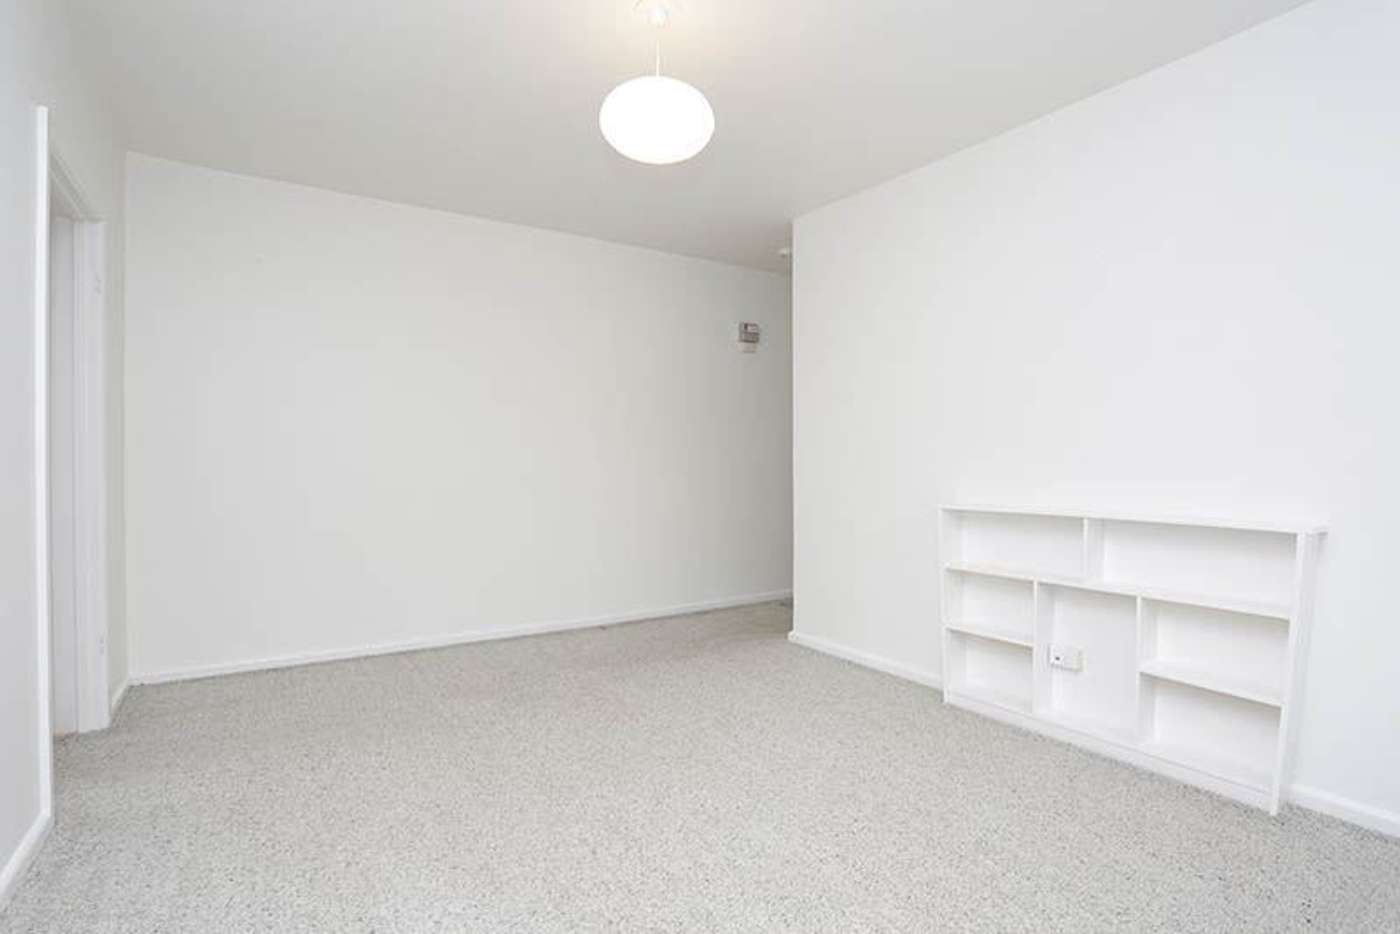 Seventh view of Homely apartment listing, 2/63 Osborne Street, South Yarra VIC 3141